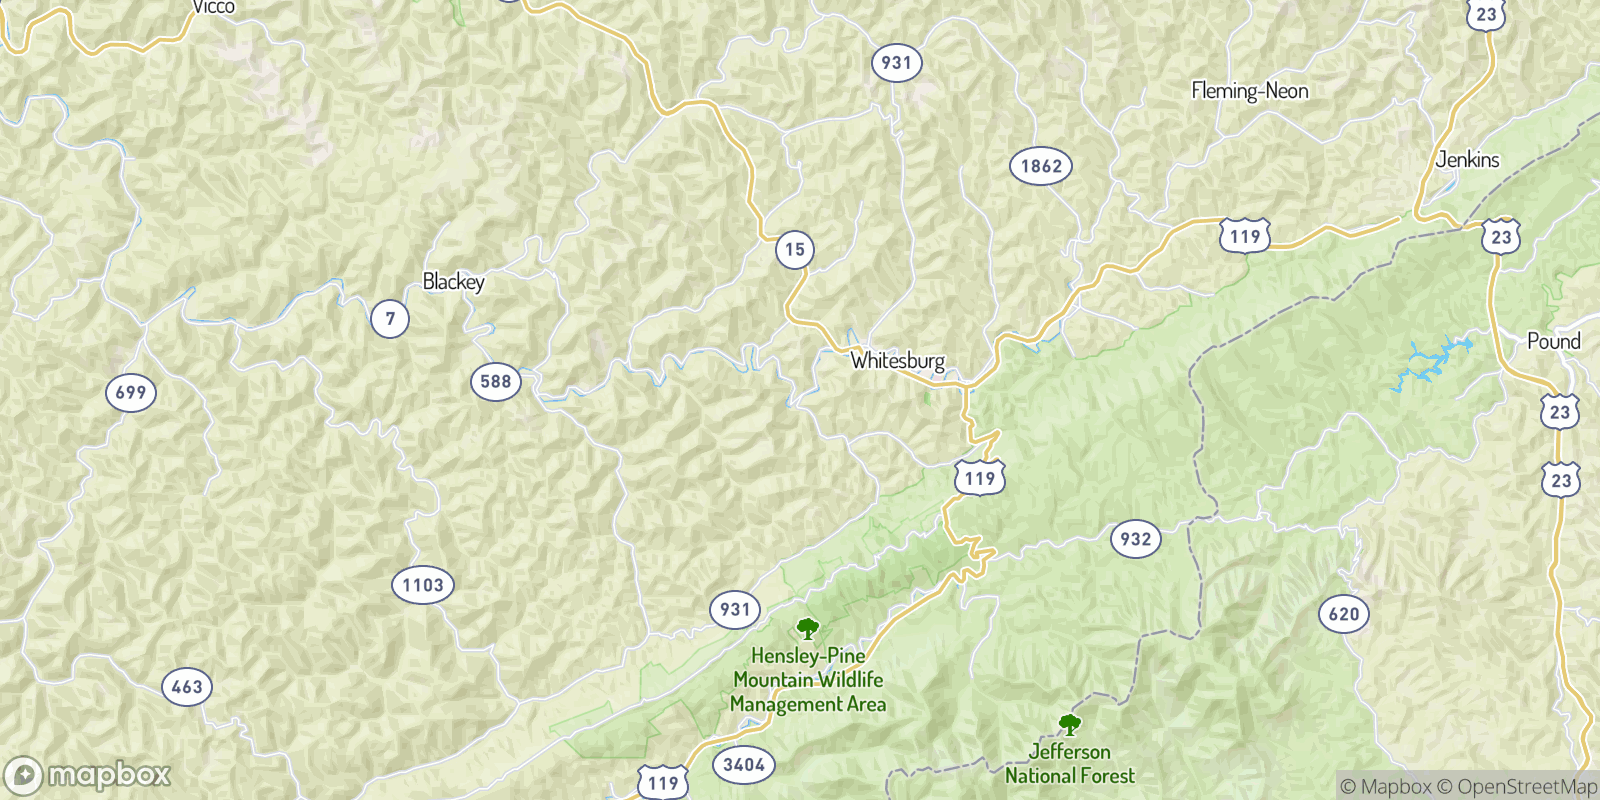 The best camping near Ice, Kentucky